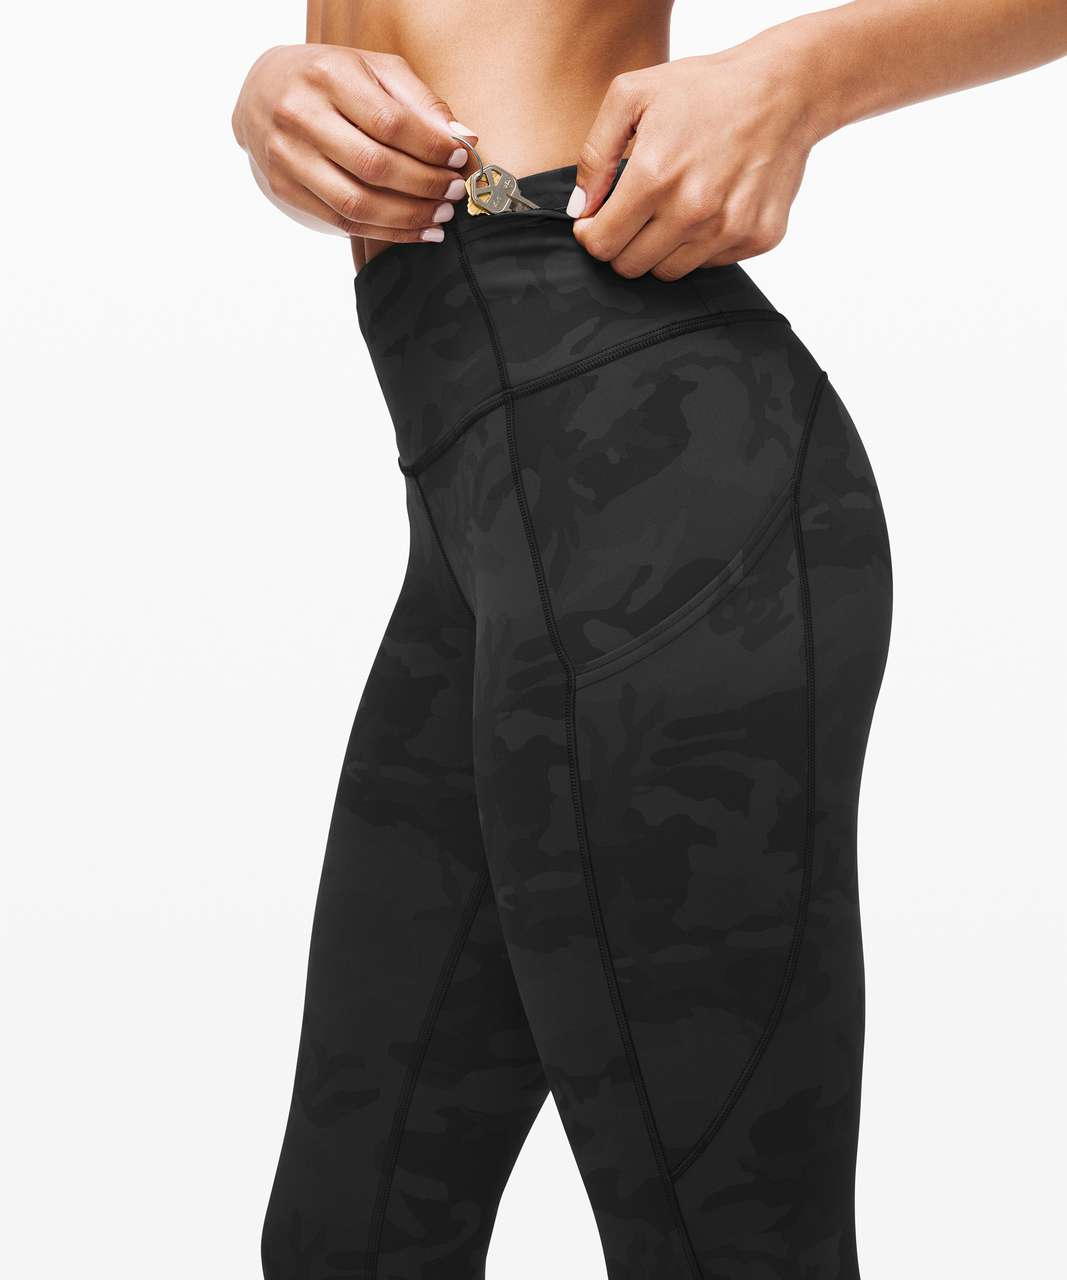 "Lululemon Fast and Free Tight II 25"" *Non-Reflective Nulux - Incognito Camo Multi Grey"